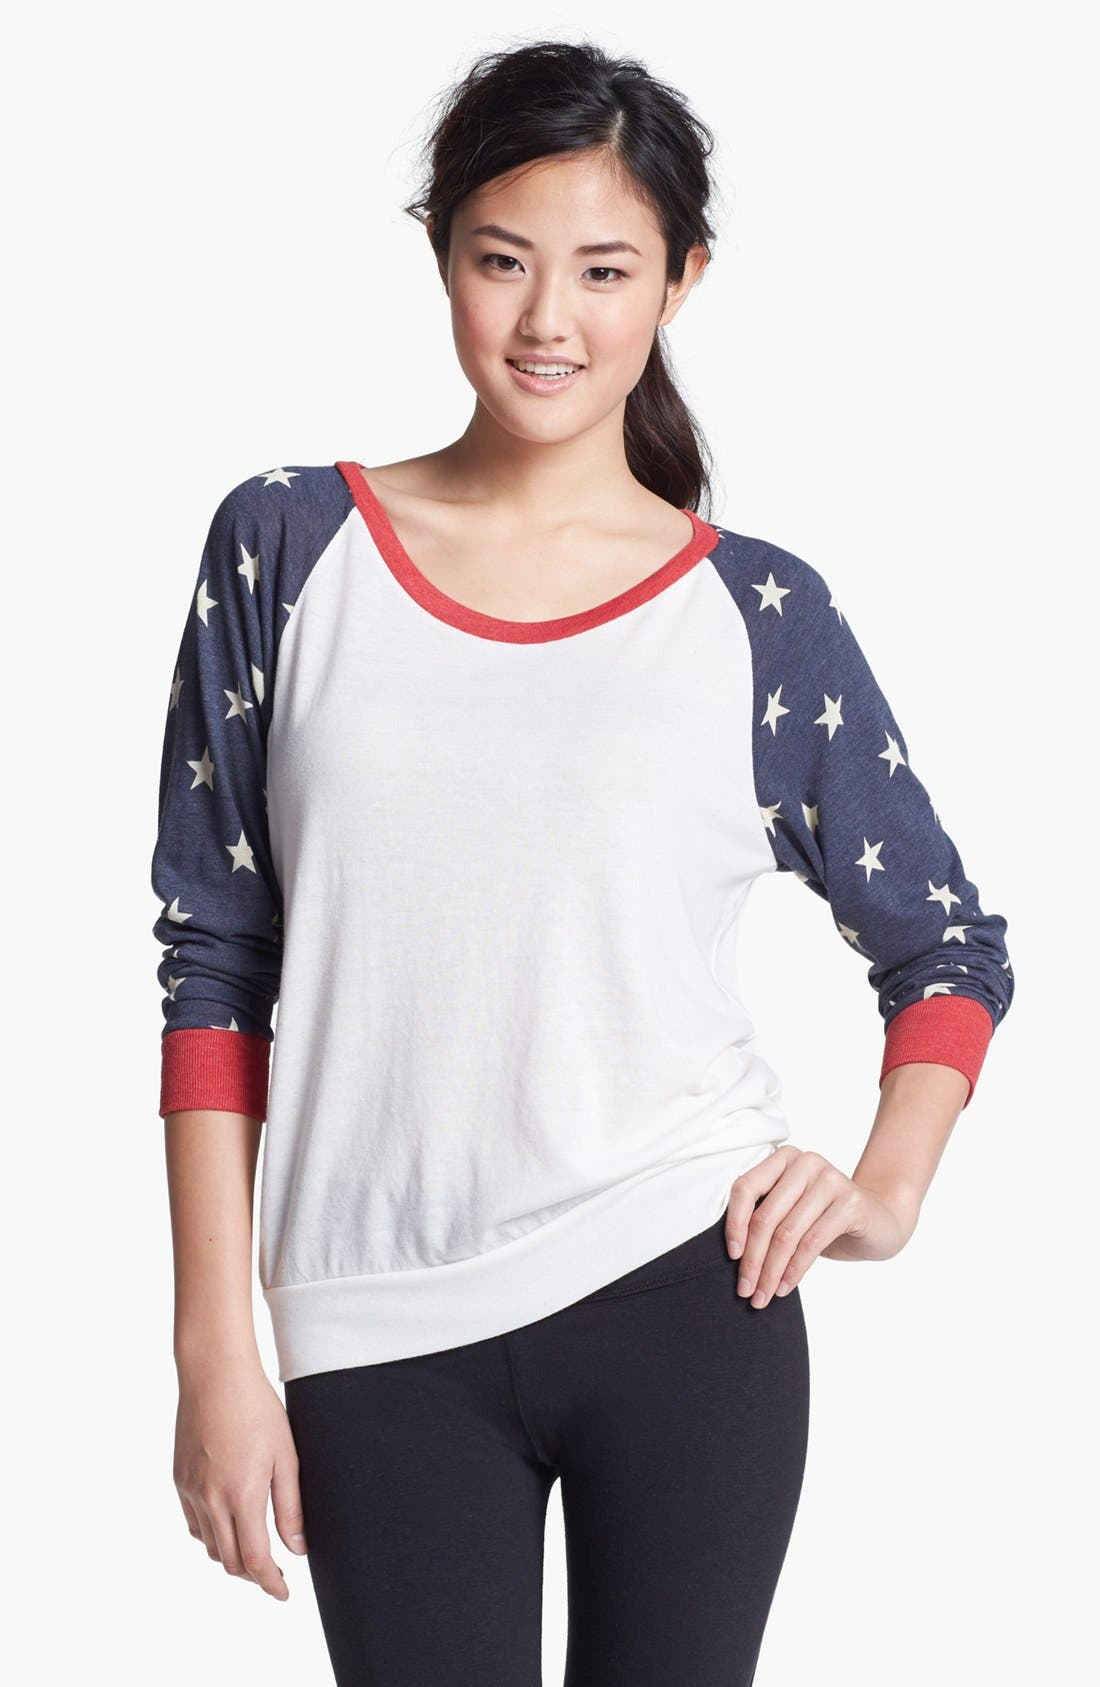 Main Image - Alternative Print Slouchy Pullover Top